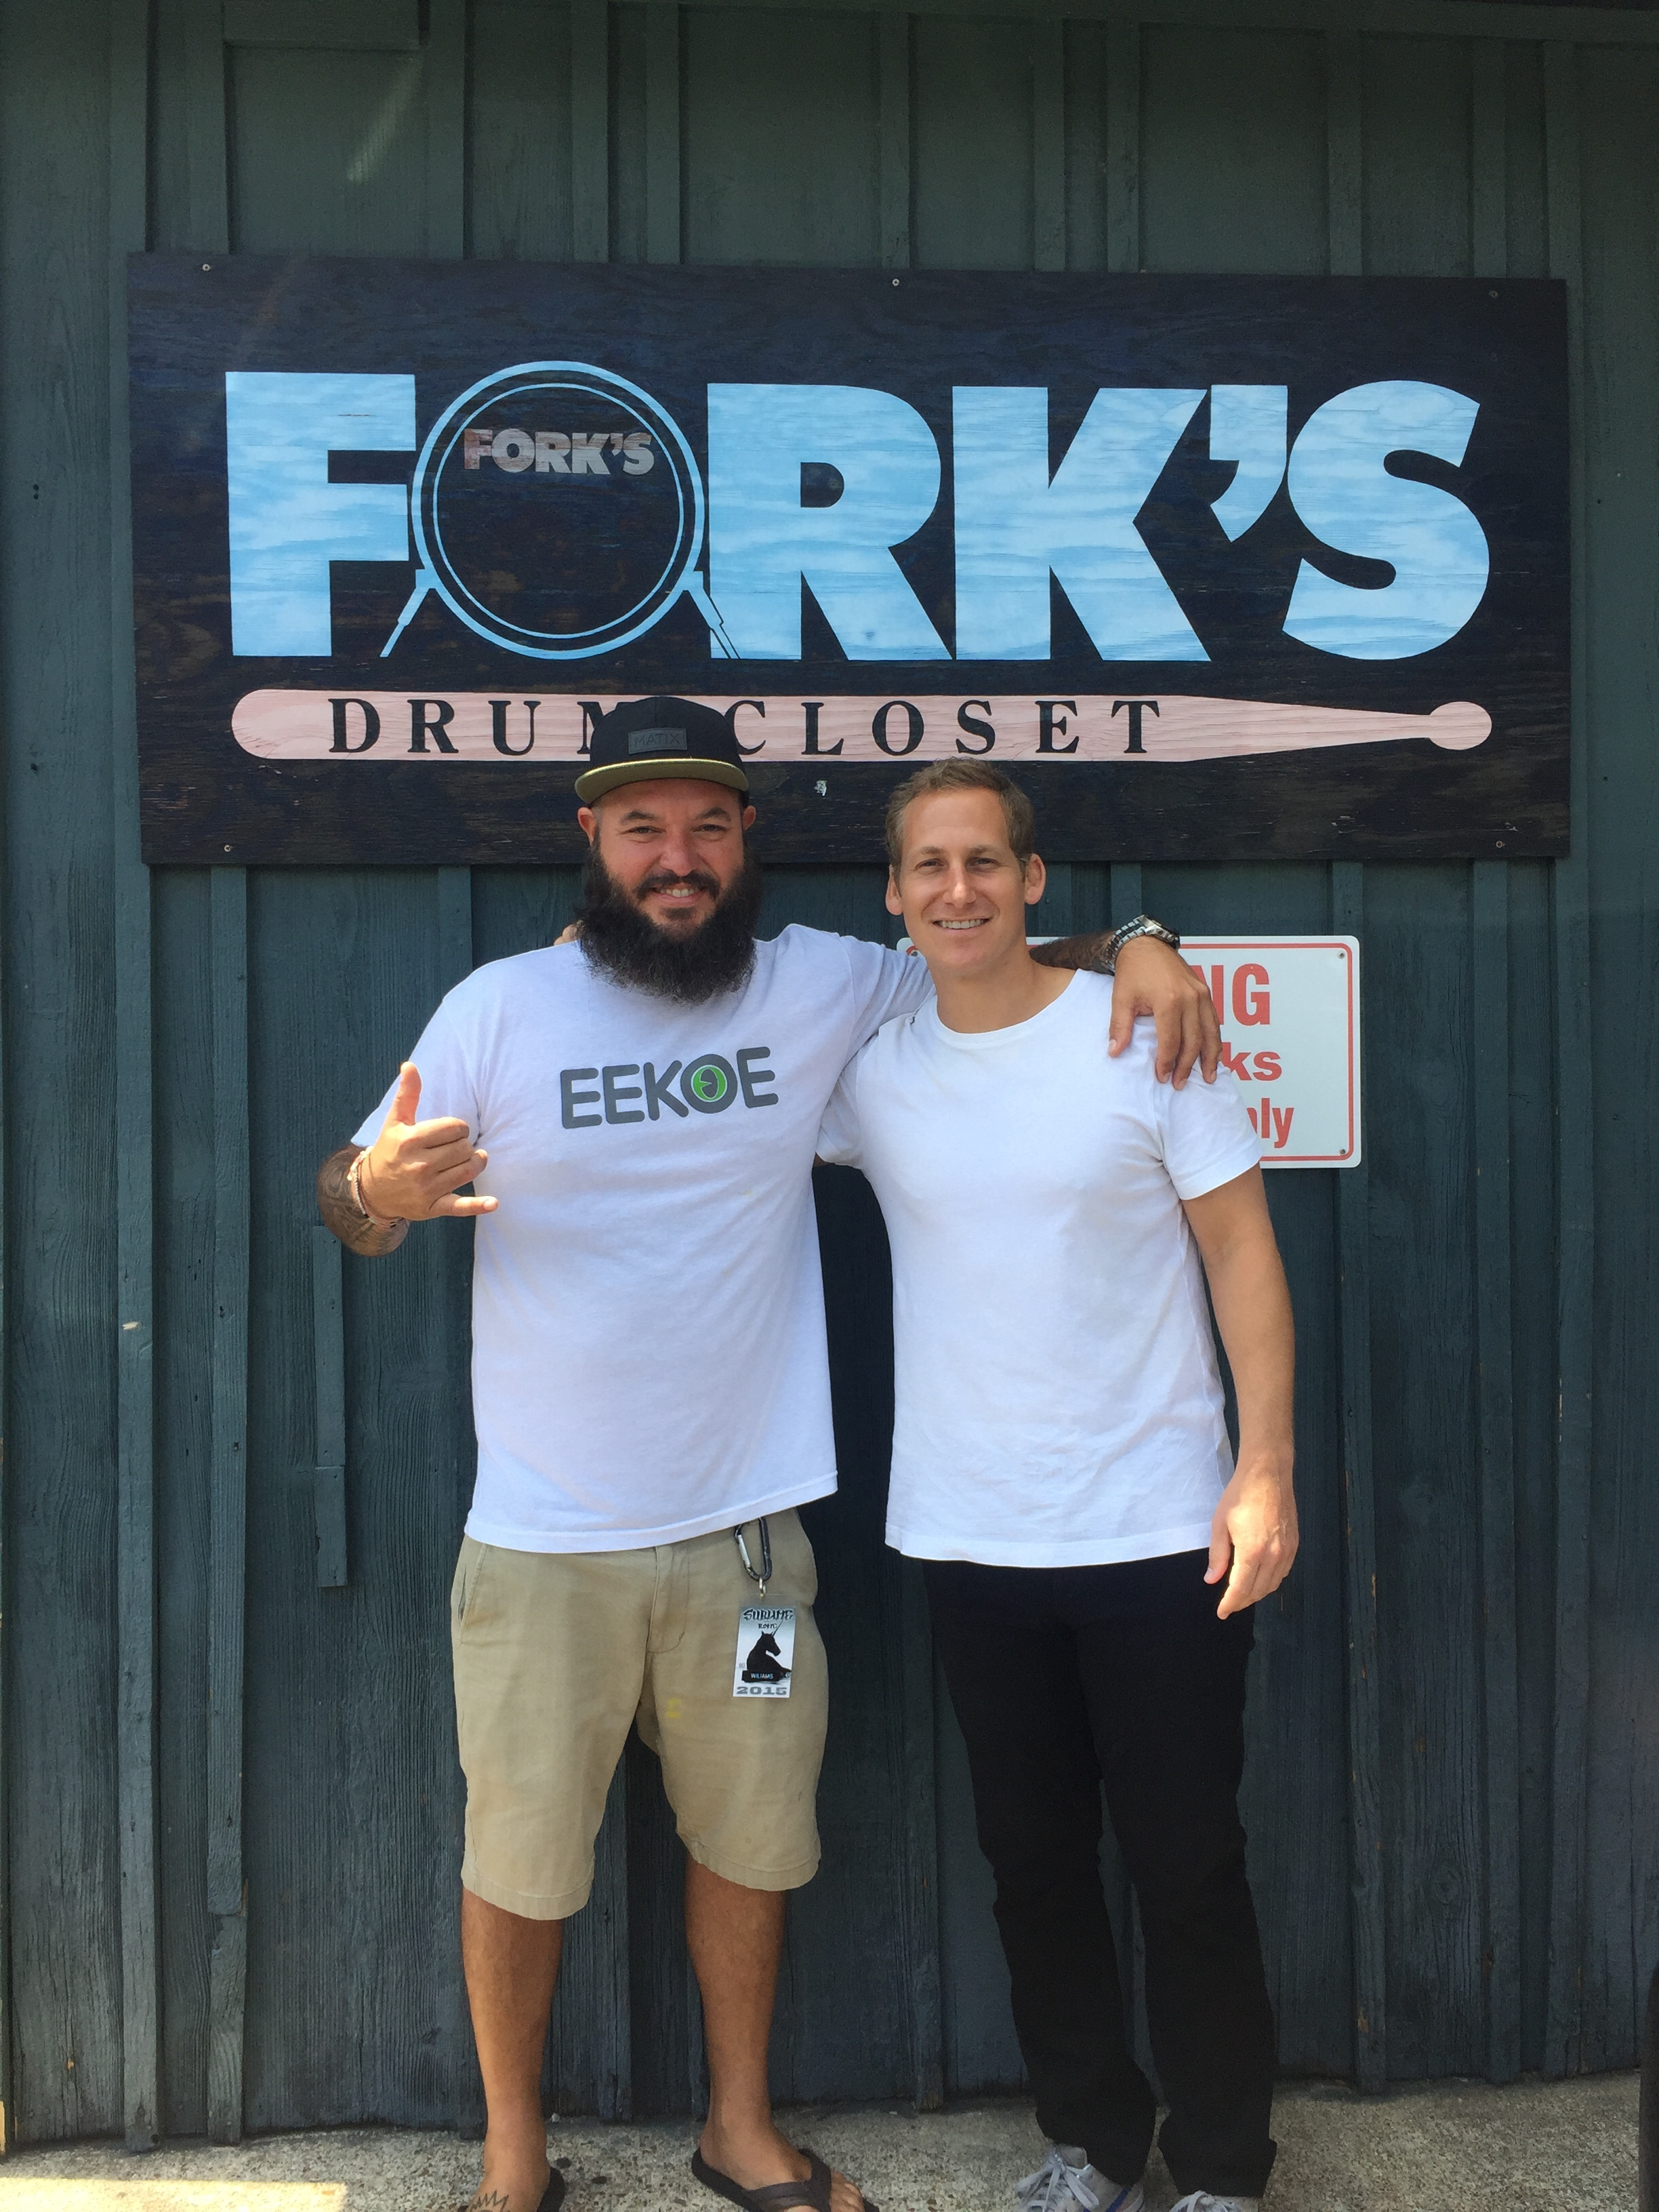 Yesod and Chris at Fork's Drum Closet in Nashville in 2015.